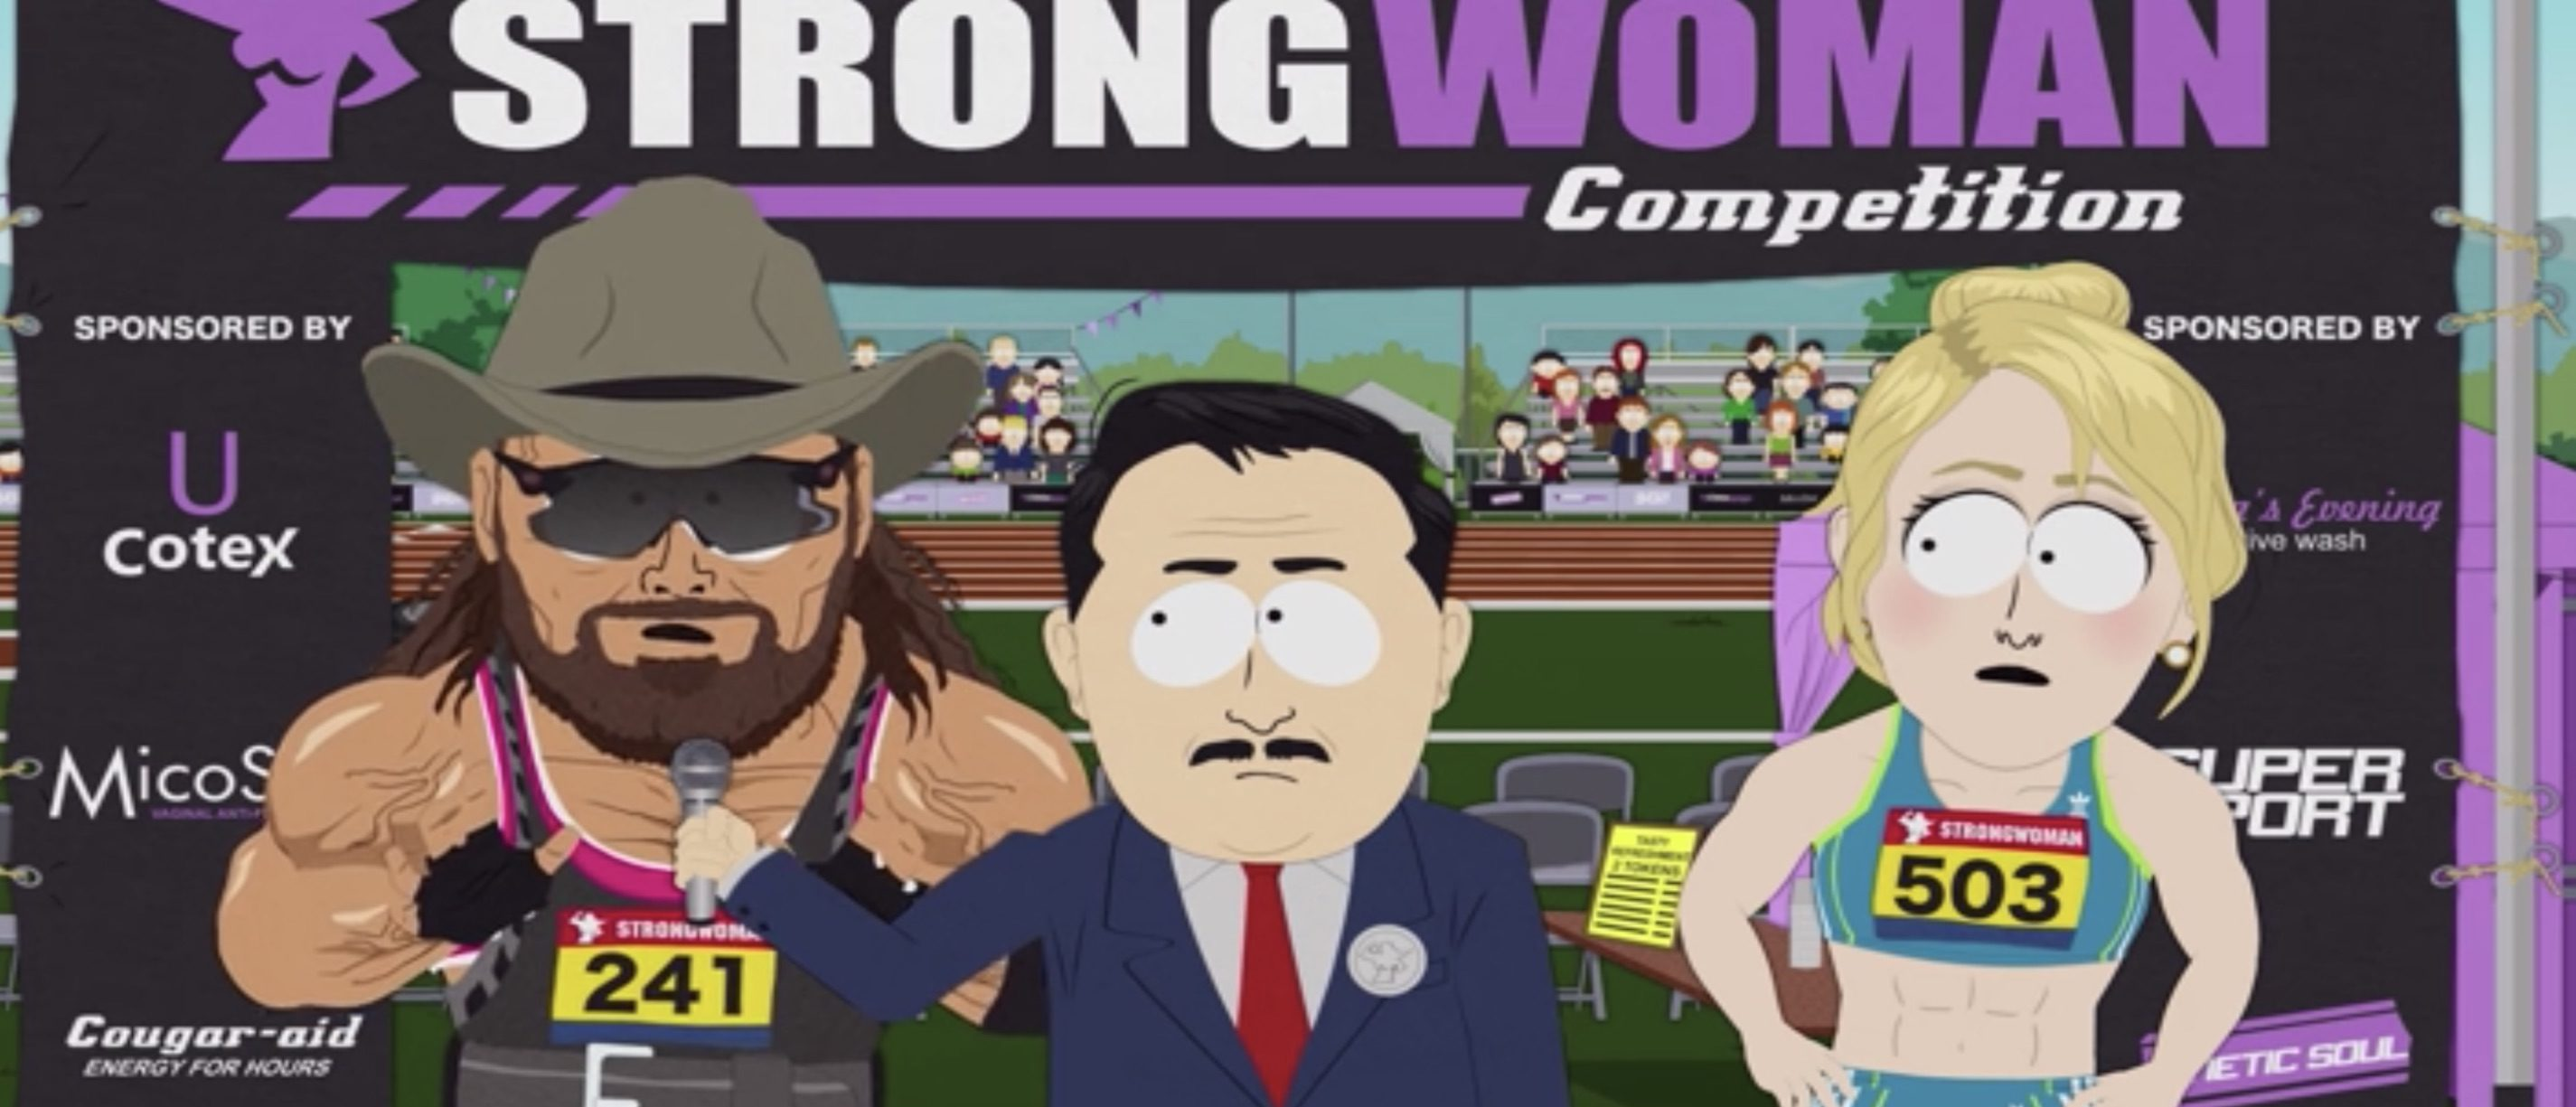 South Park Jumps Into Transgender Athlete Debate As 'Randy Savage' Character Dominates 'Strong Woman' Contest